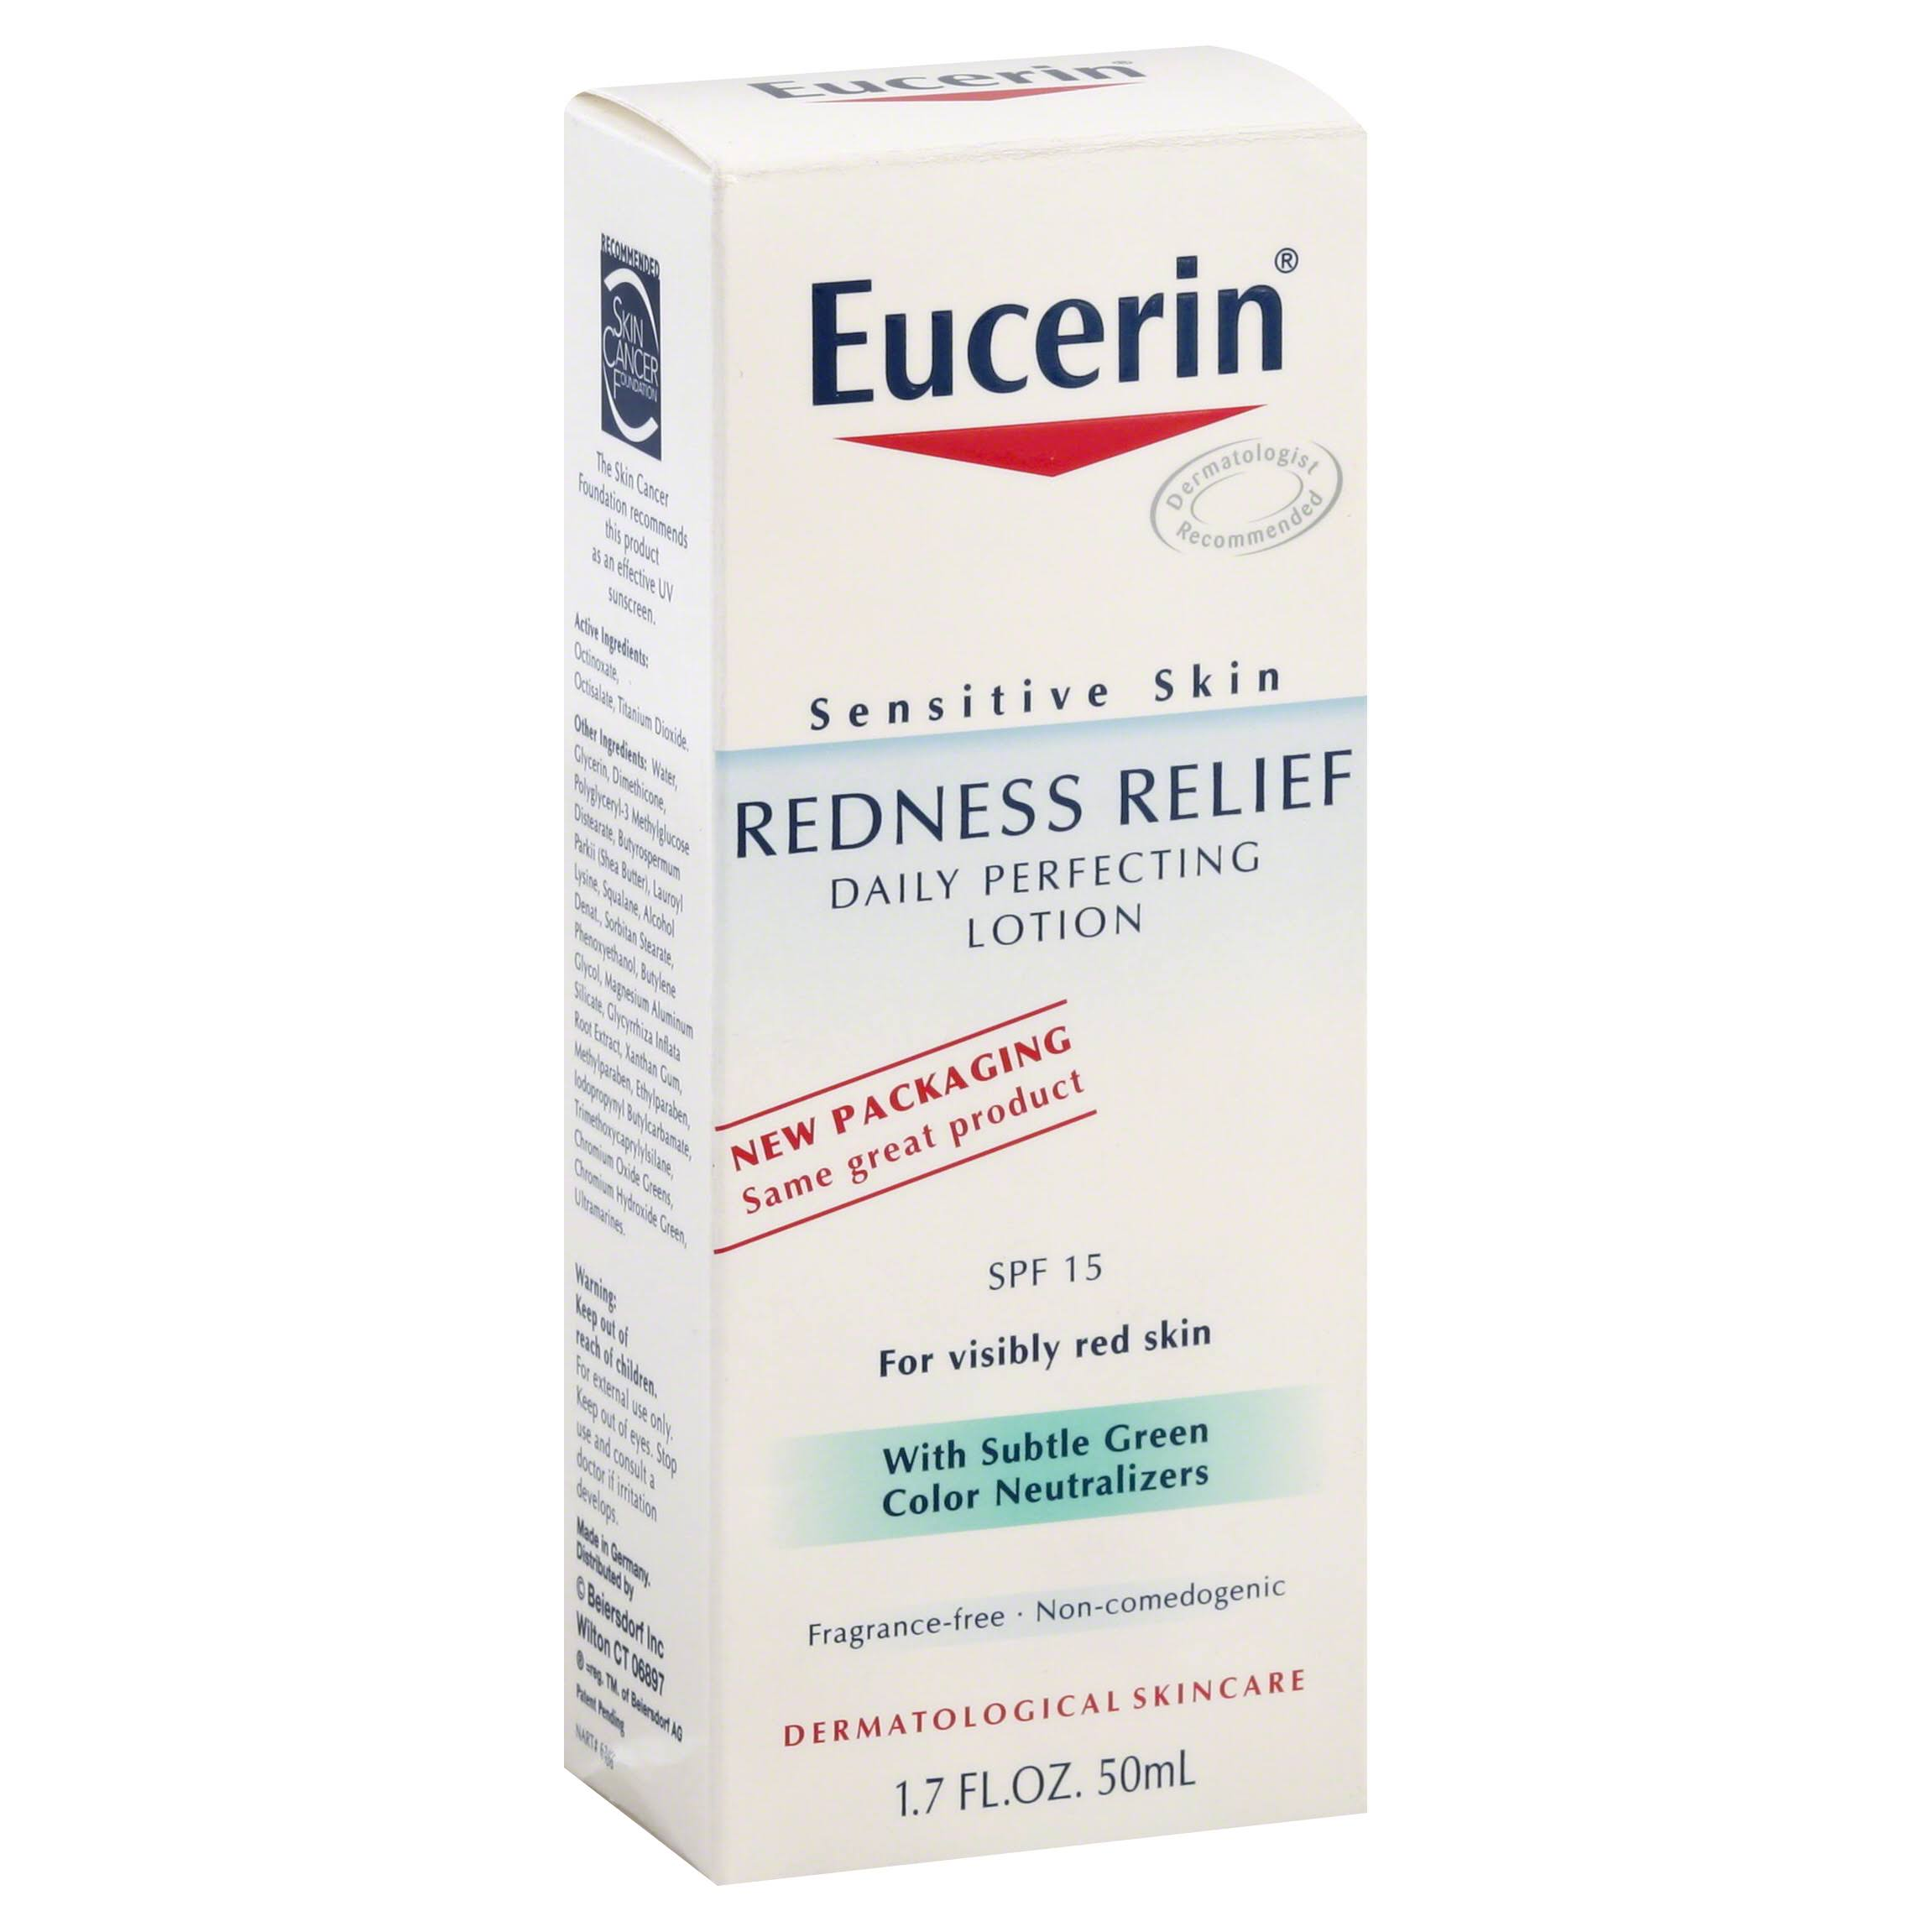 Eucerin Sensitive Skin Redness Relief Daily Perfecting Lotion - SPF 15, 1.7oz